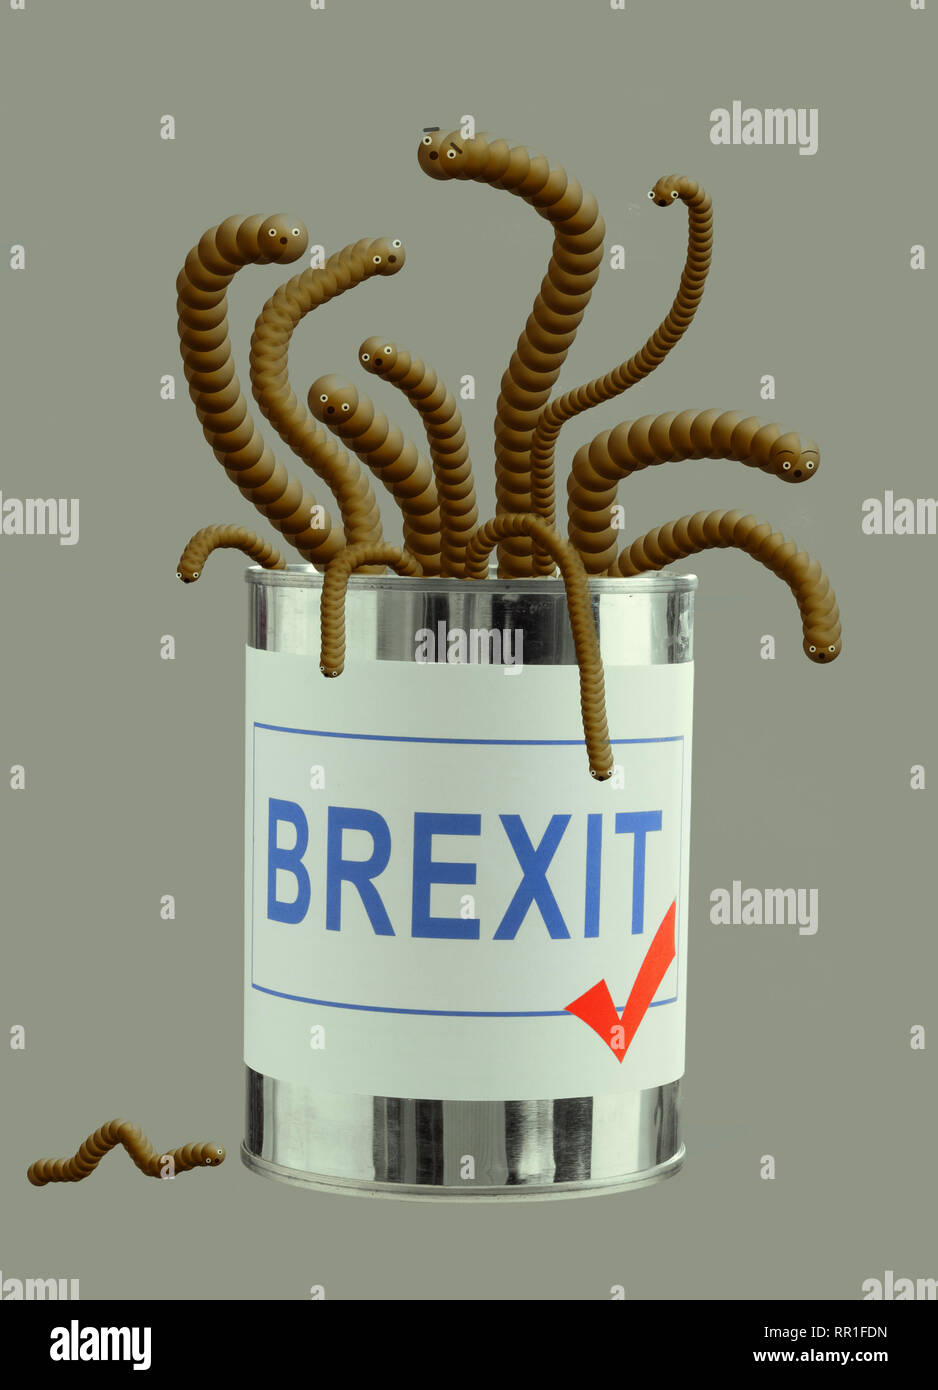 Brexit can of worms. Concept, metaphor UK EU politics. Cute critters. - Stock Image